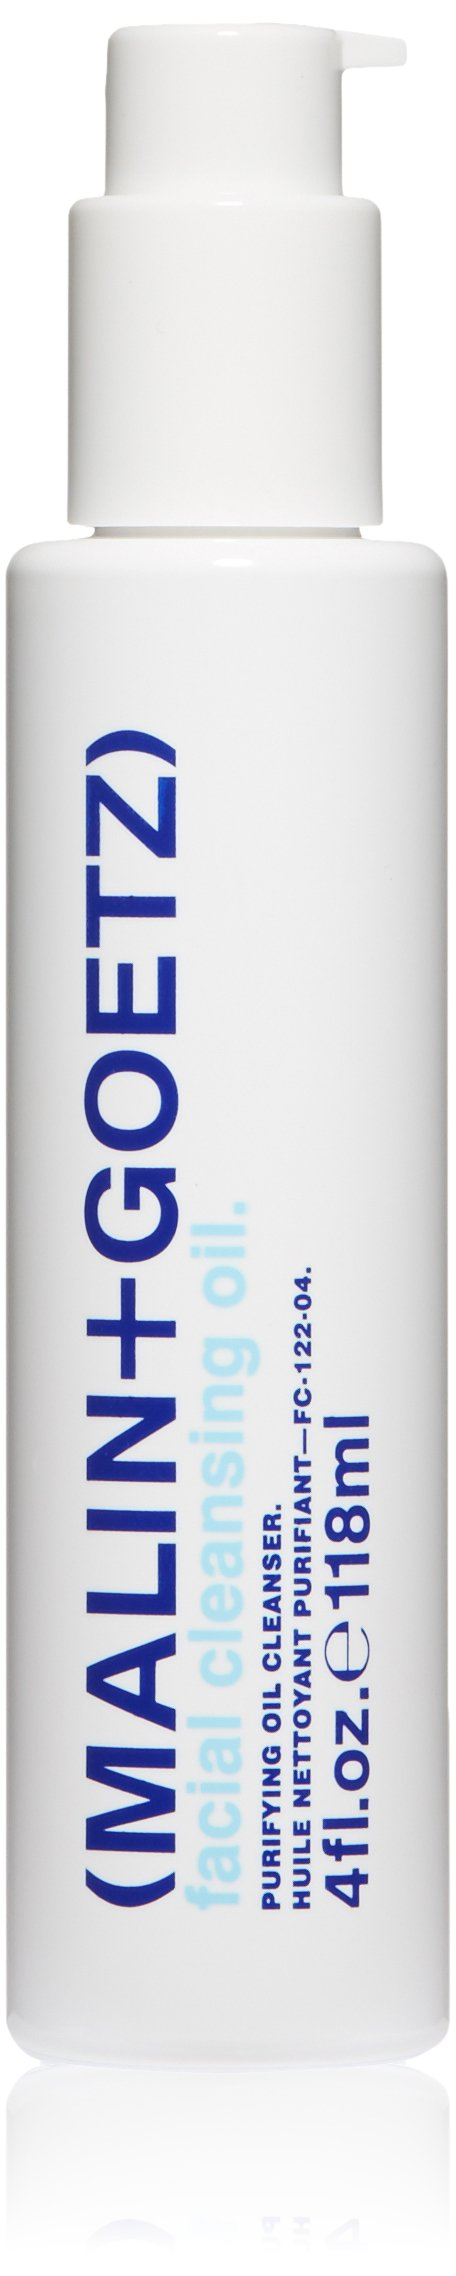 Malin + Goetz Facial Cleansing Oil, 8 Fl Oz